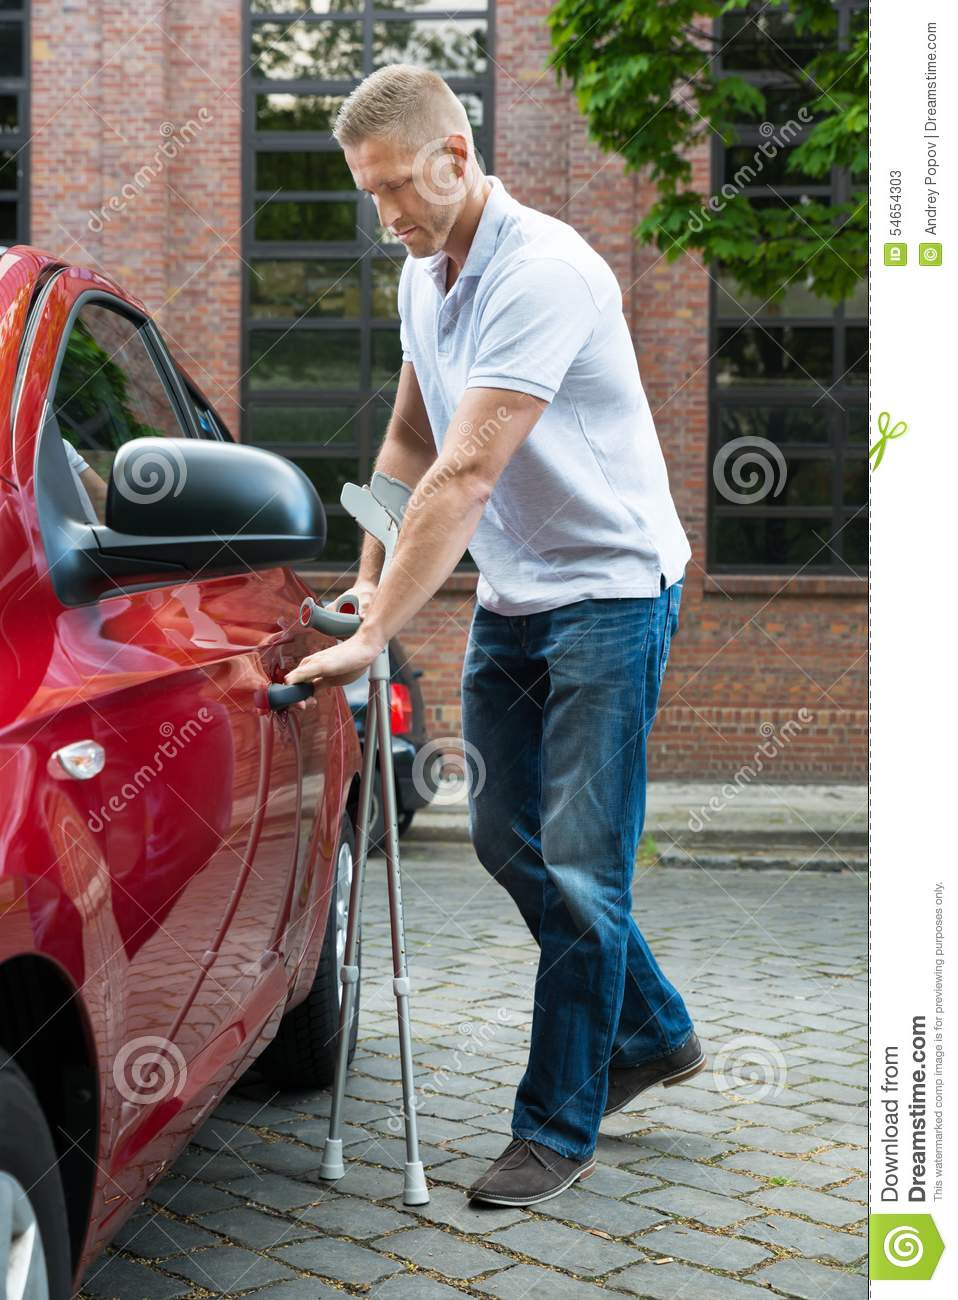 Disabled man holding crutches opening door of a car